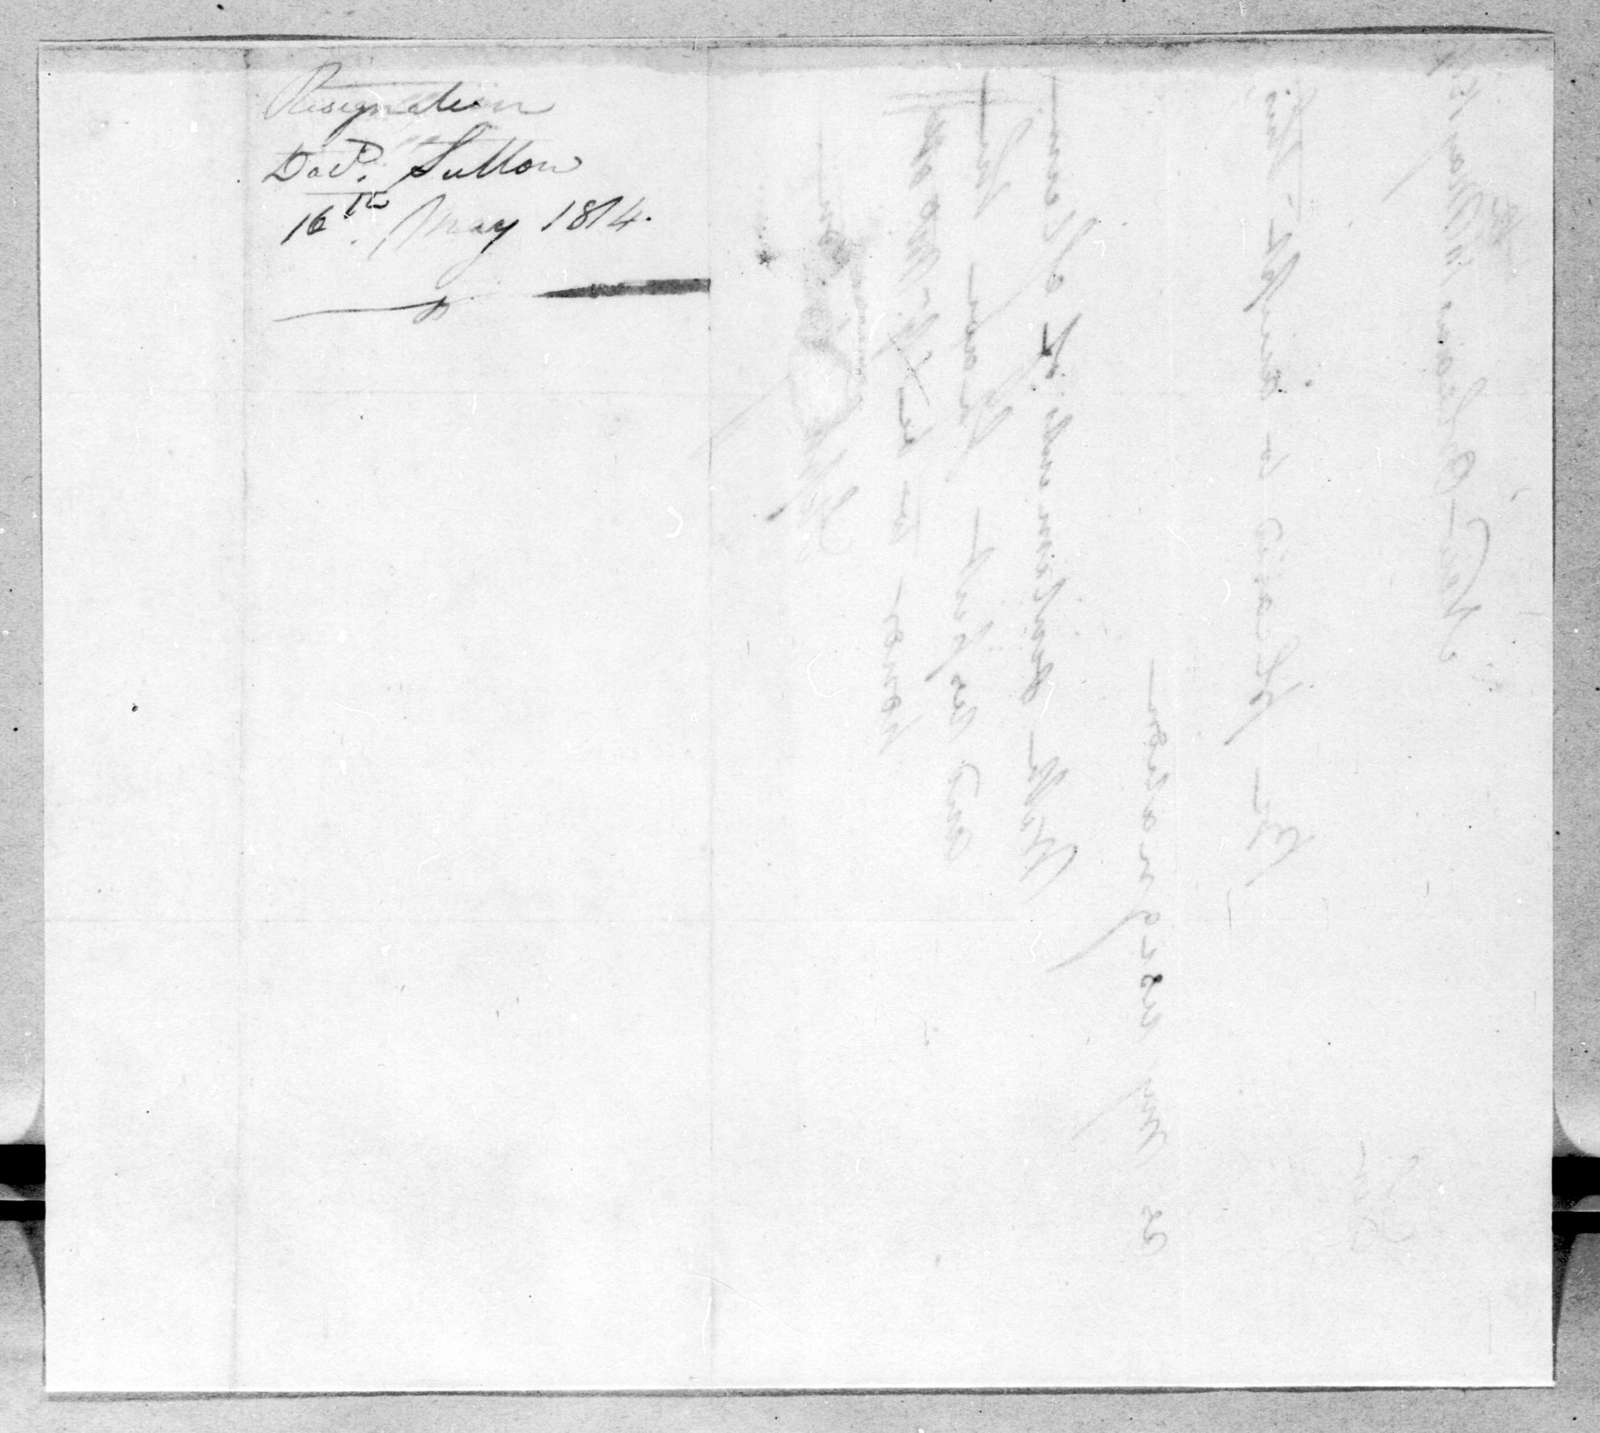 S. Sutton to Andrew Jackson, May 16, 1814